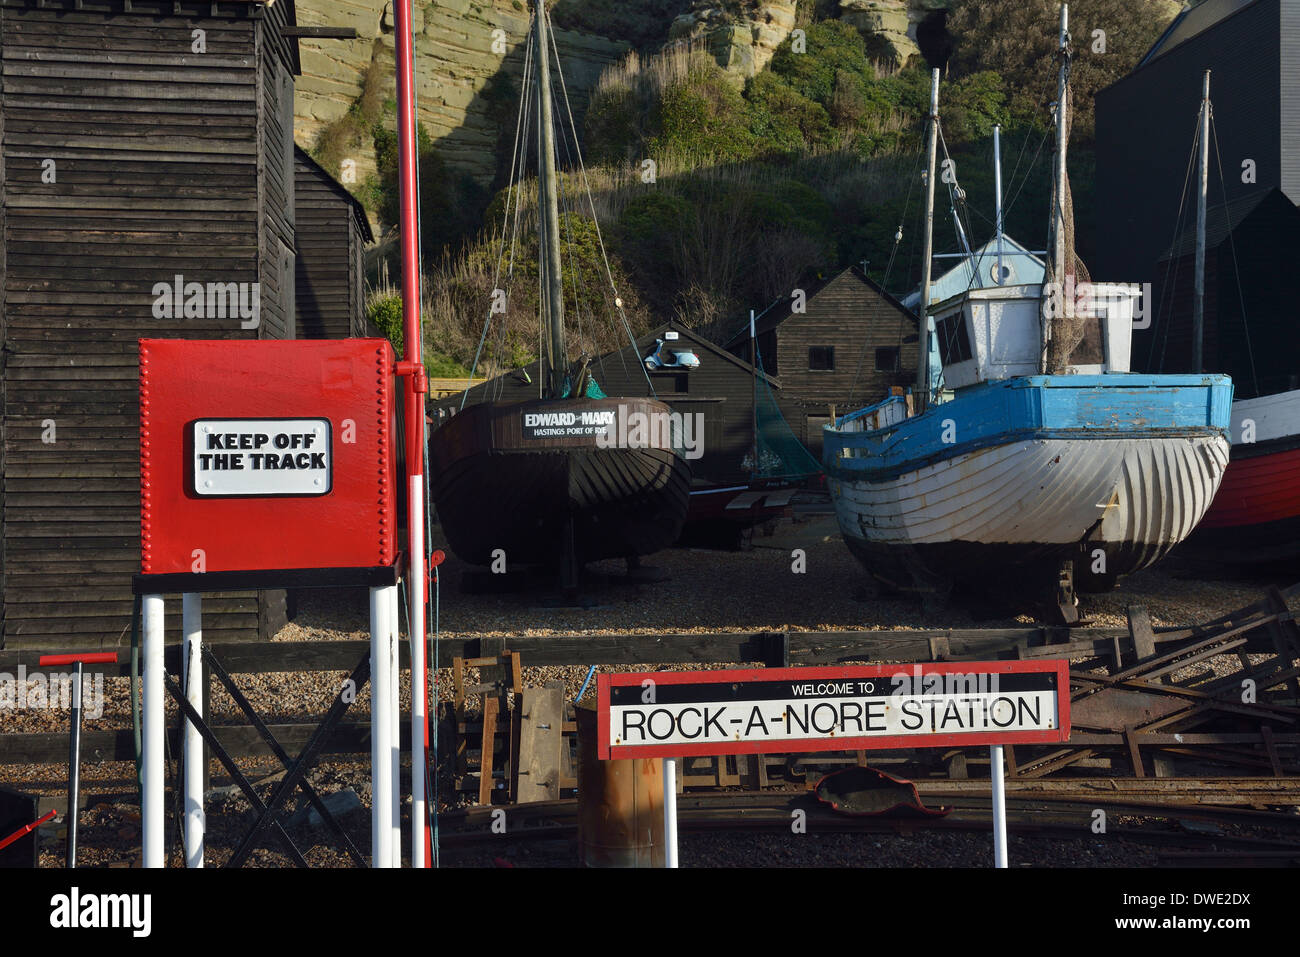 Rock-a-nore miniature railway station, fishing net huts and boats. Hastings - Stock Image